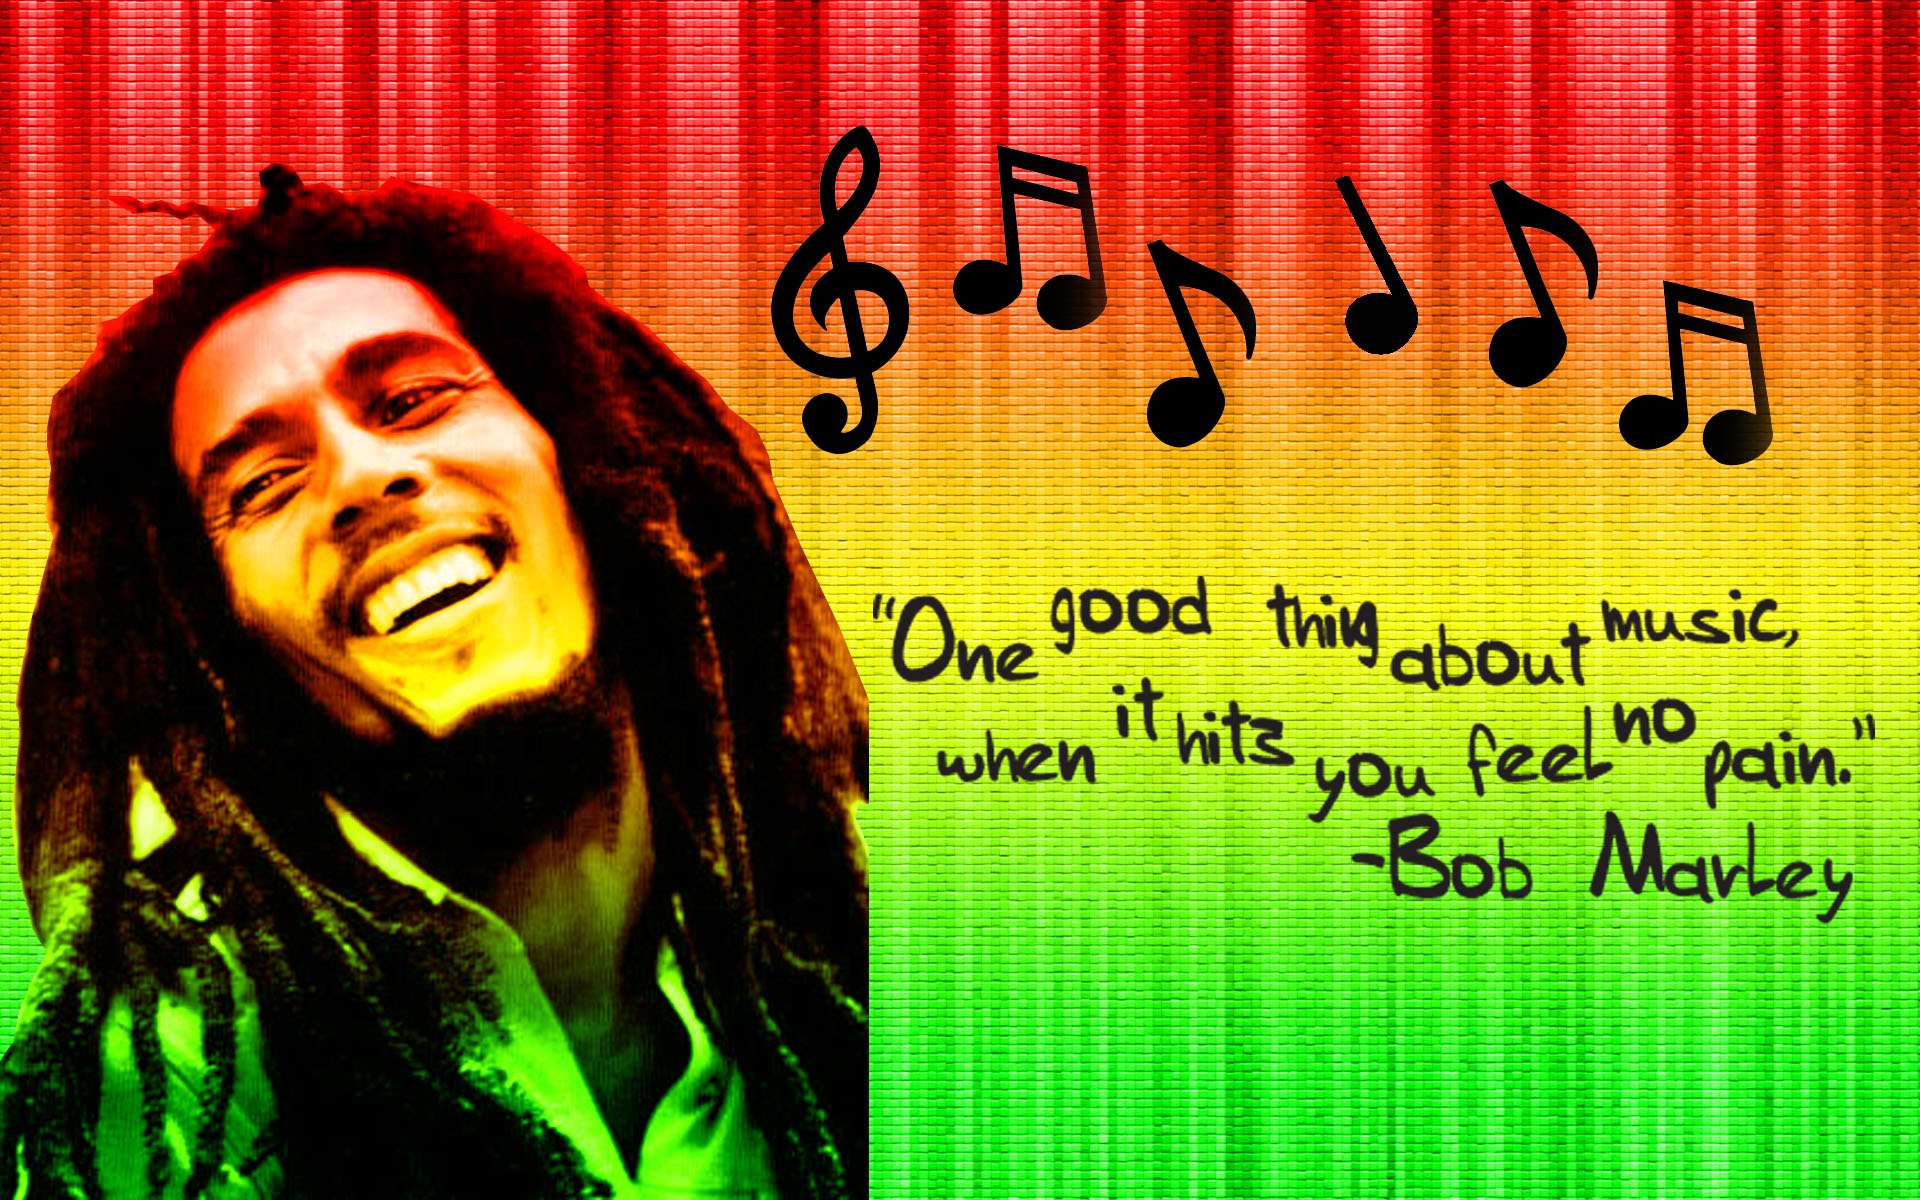 Roots Rock Reggae Images Bob Marley Hd Wallpaper And Background